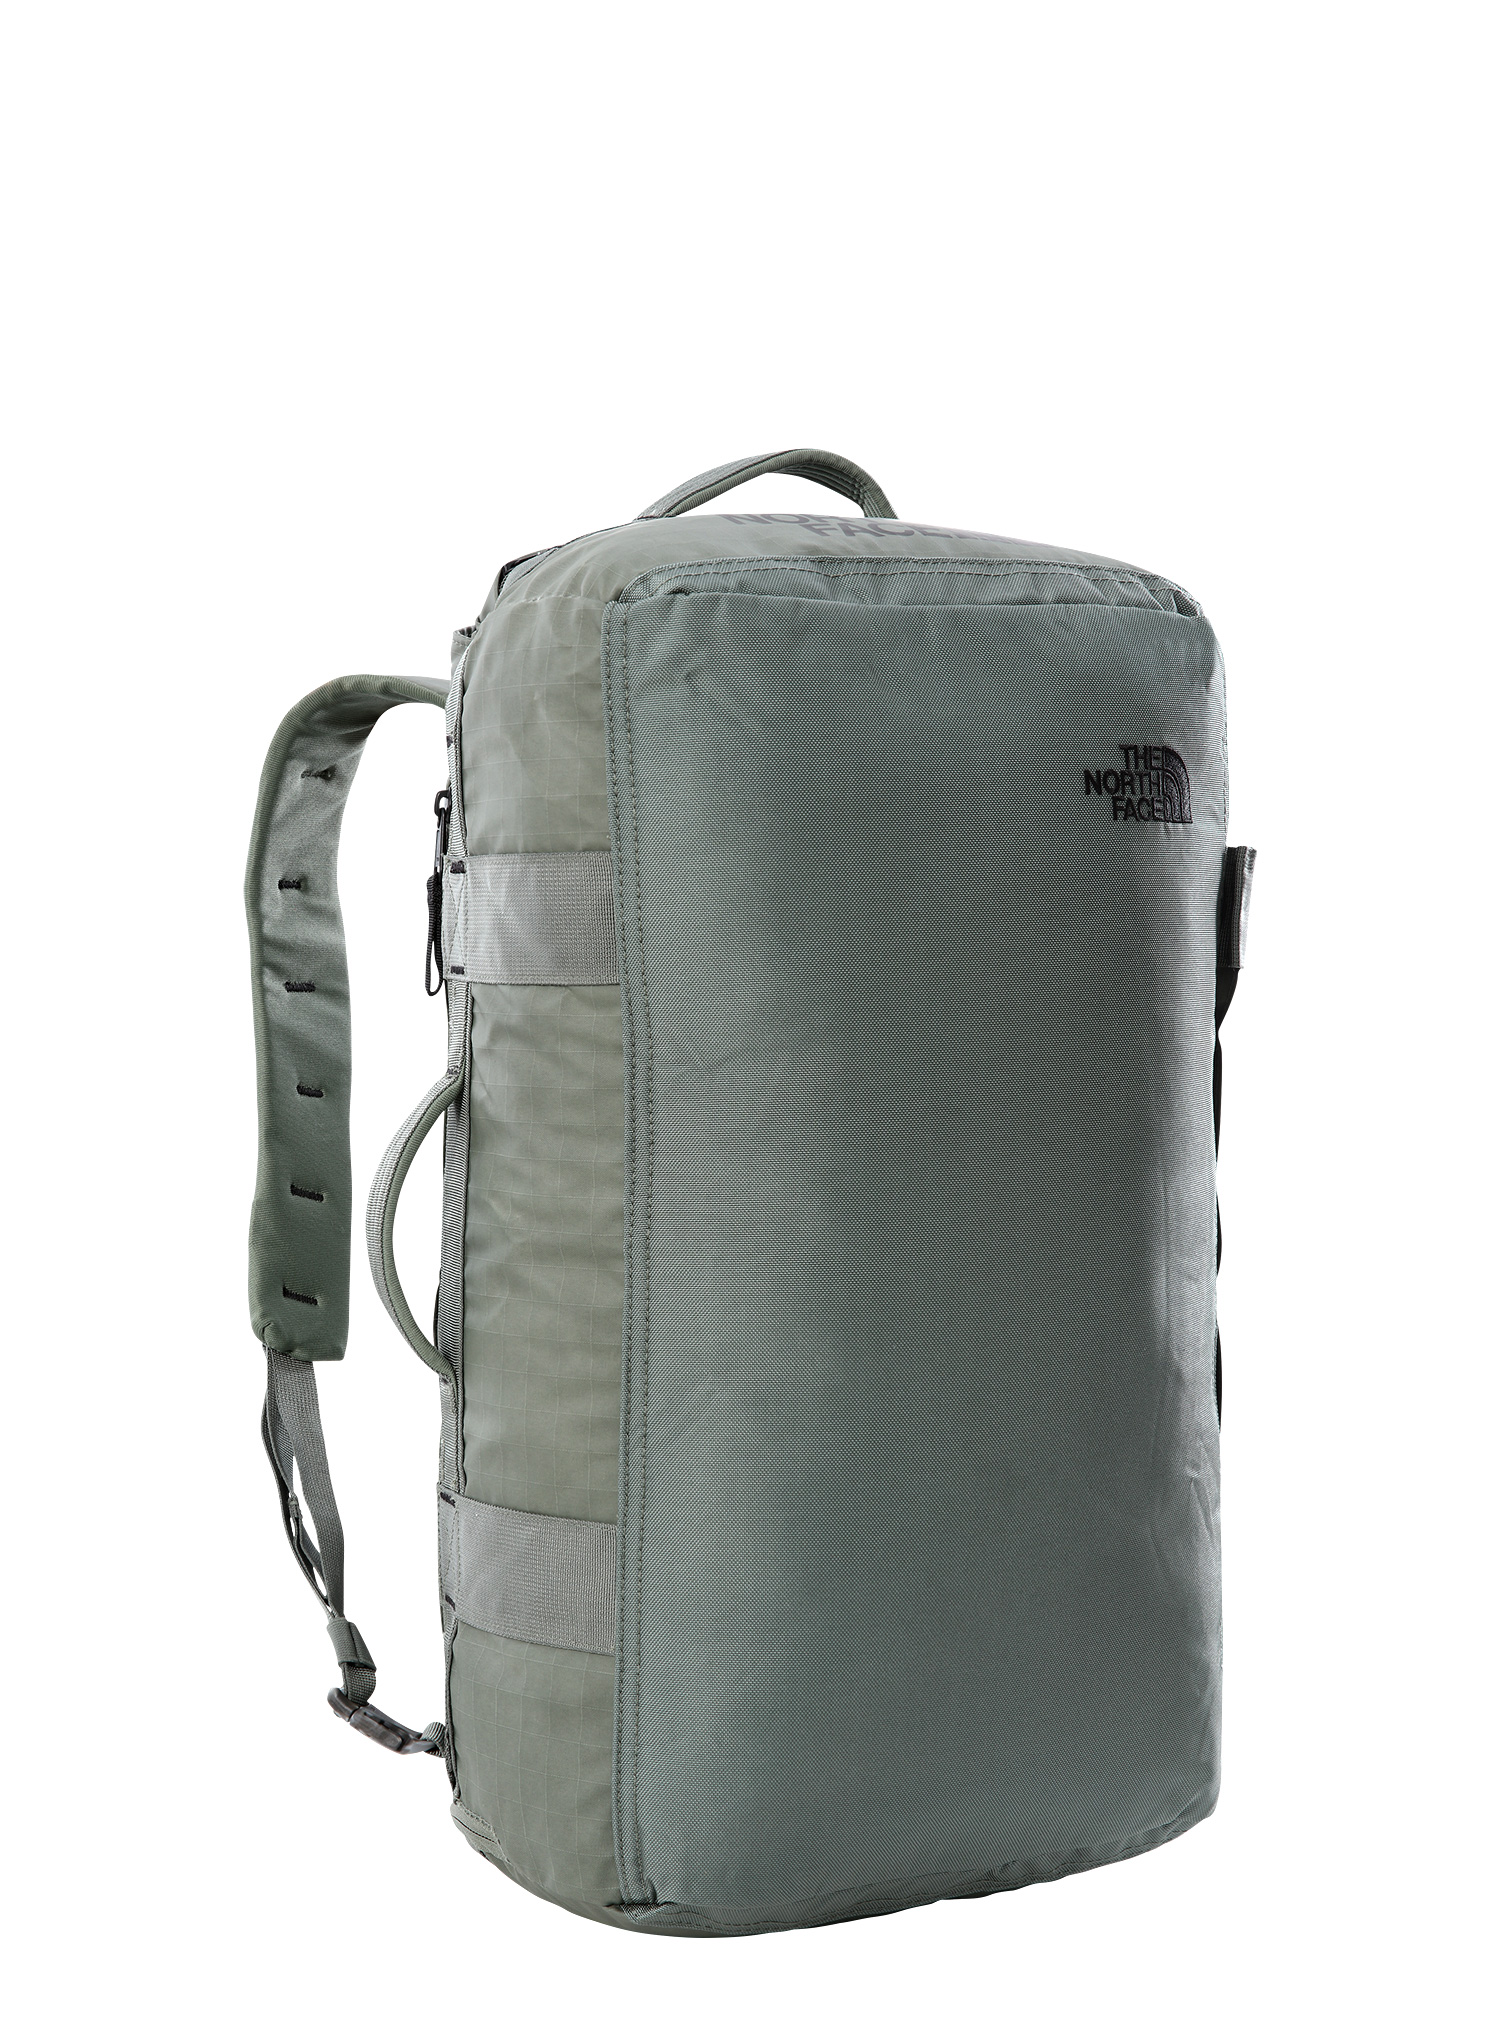 Torba The North Face Base Camp Voyager Duffel 32L - green/blk - zdjęcie nr. 4